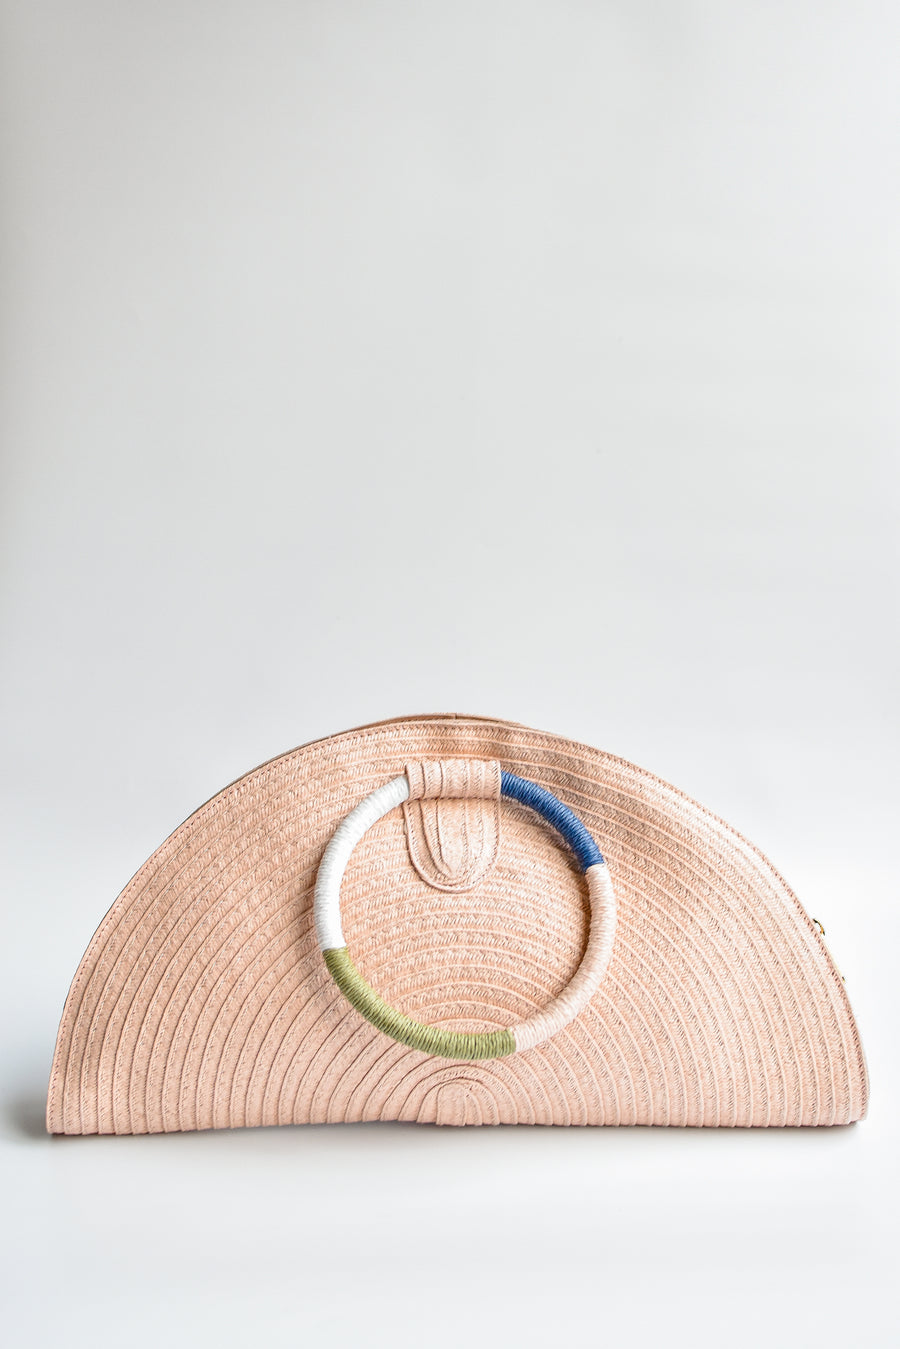 Pink half-moon straw clutch with colorful wrapped circle handle and leather sides.